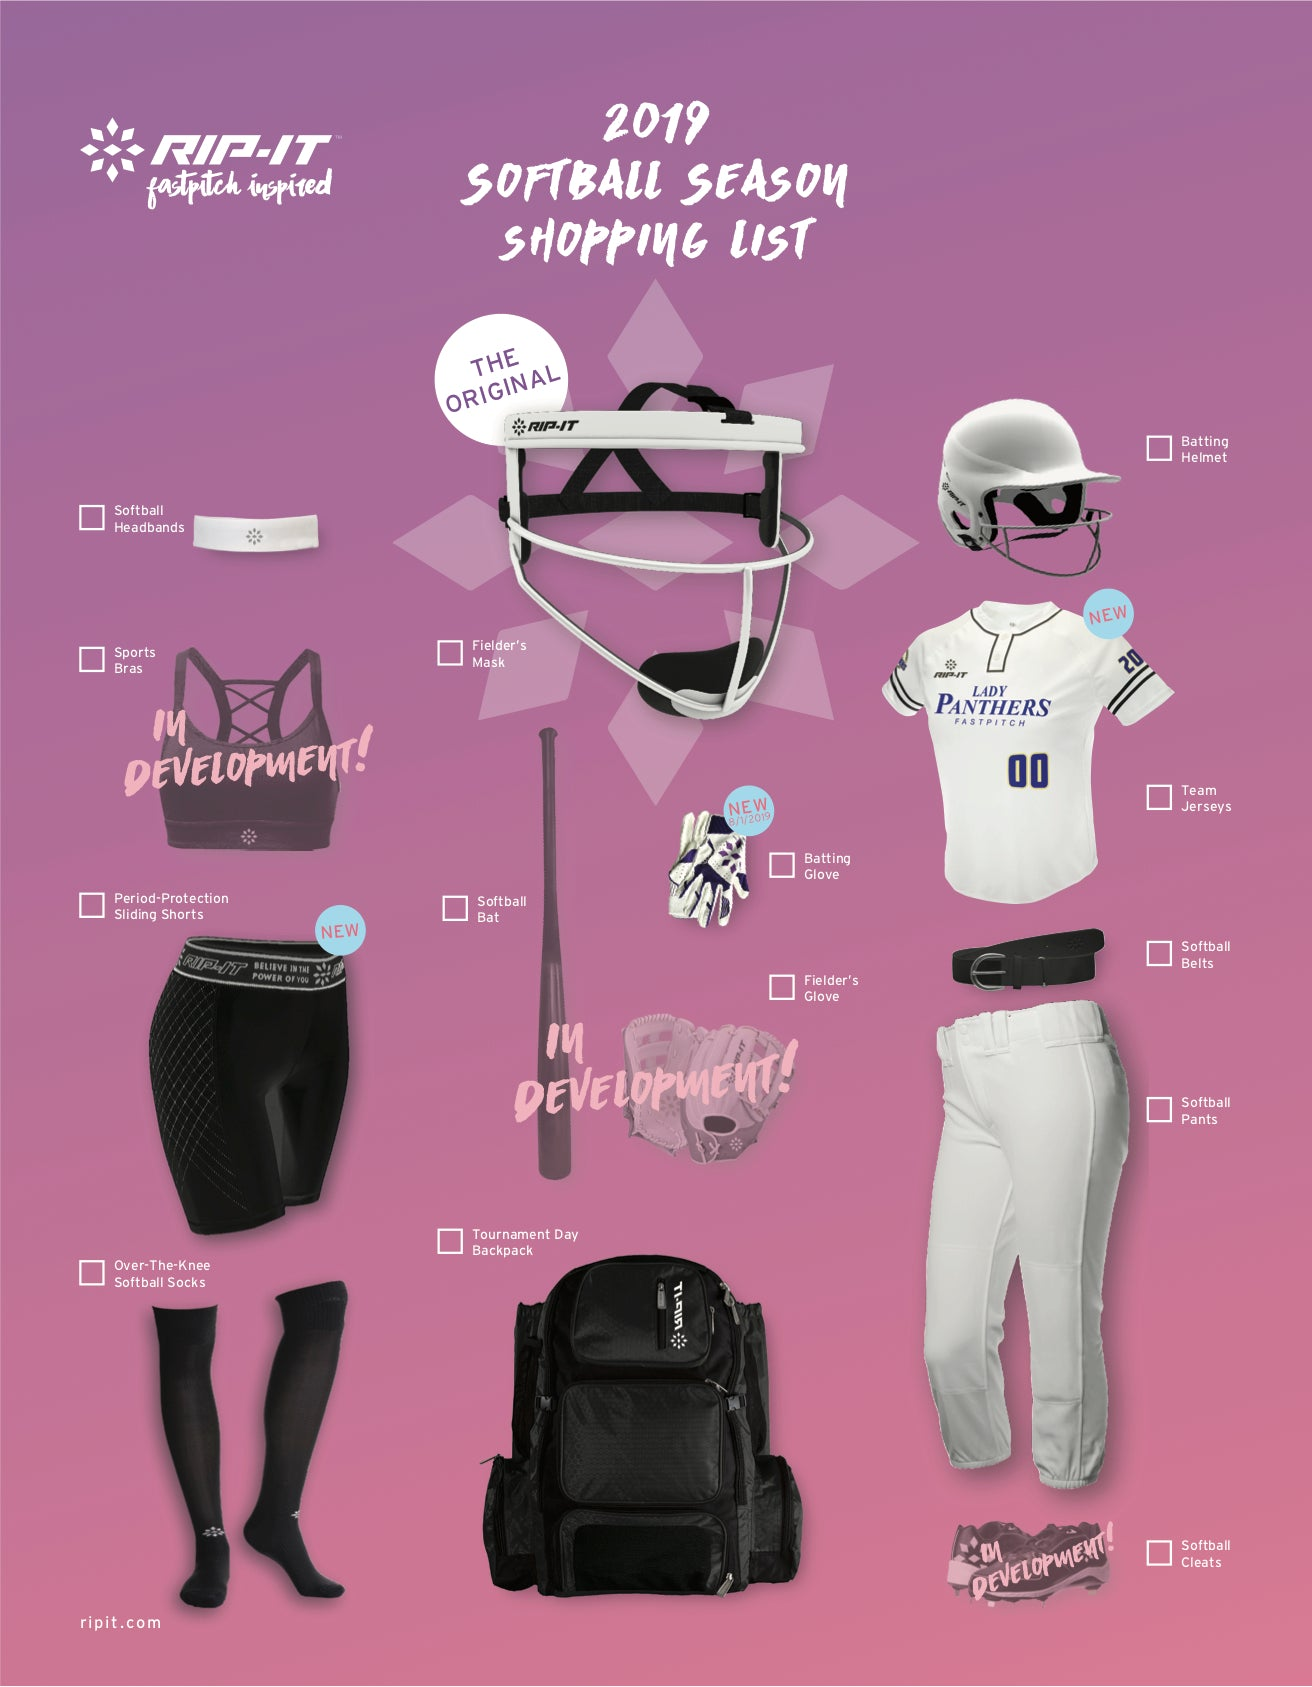 2019 RIP-IT Softball Shopping List